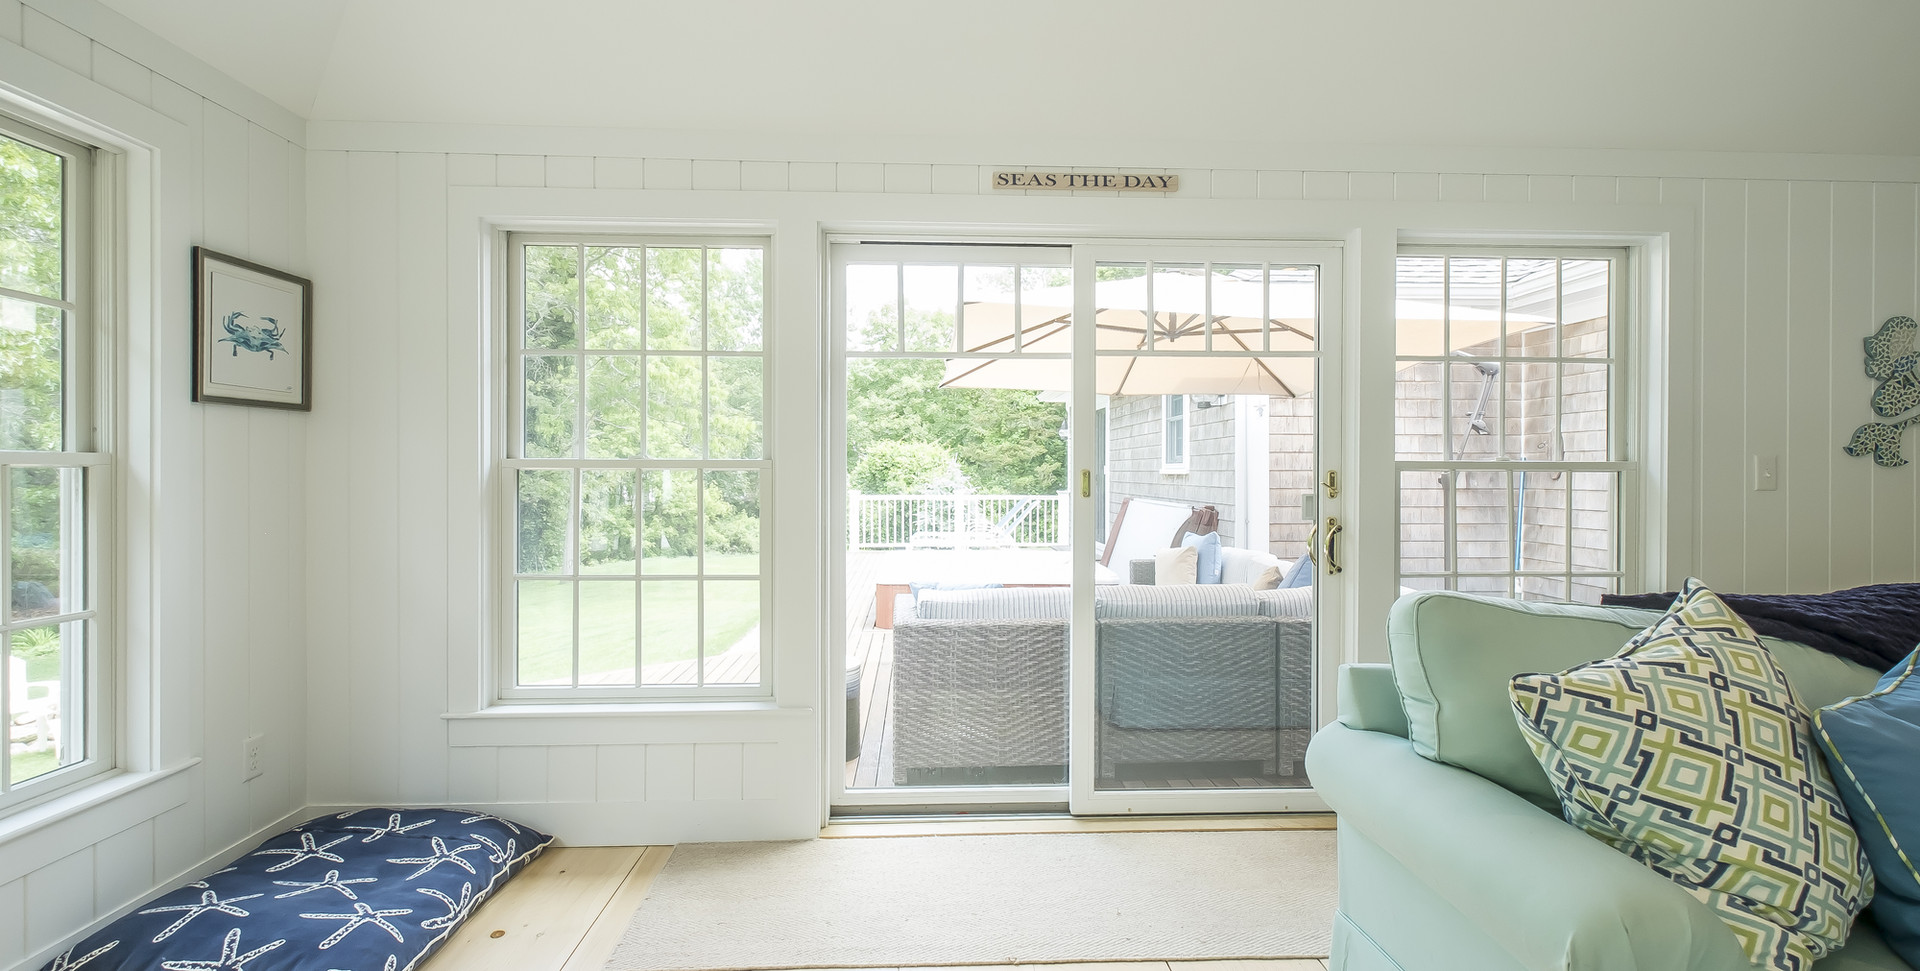 Cape Cod Room with Large Windows